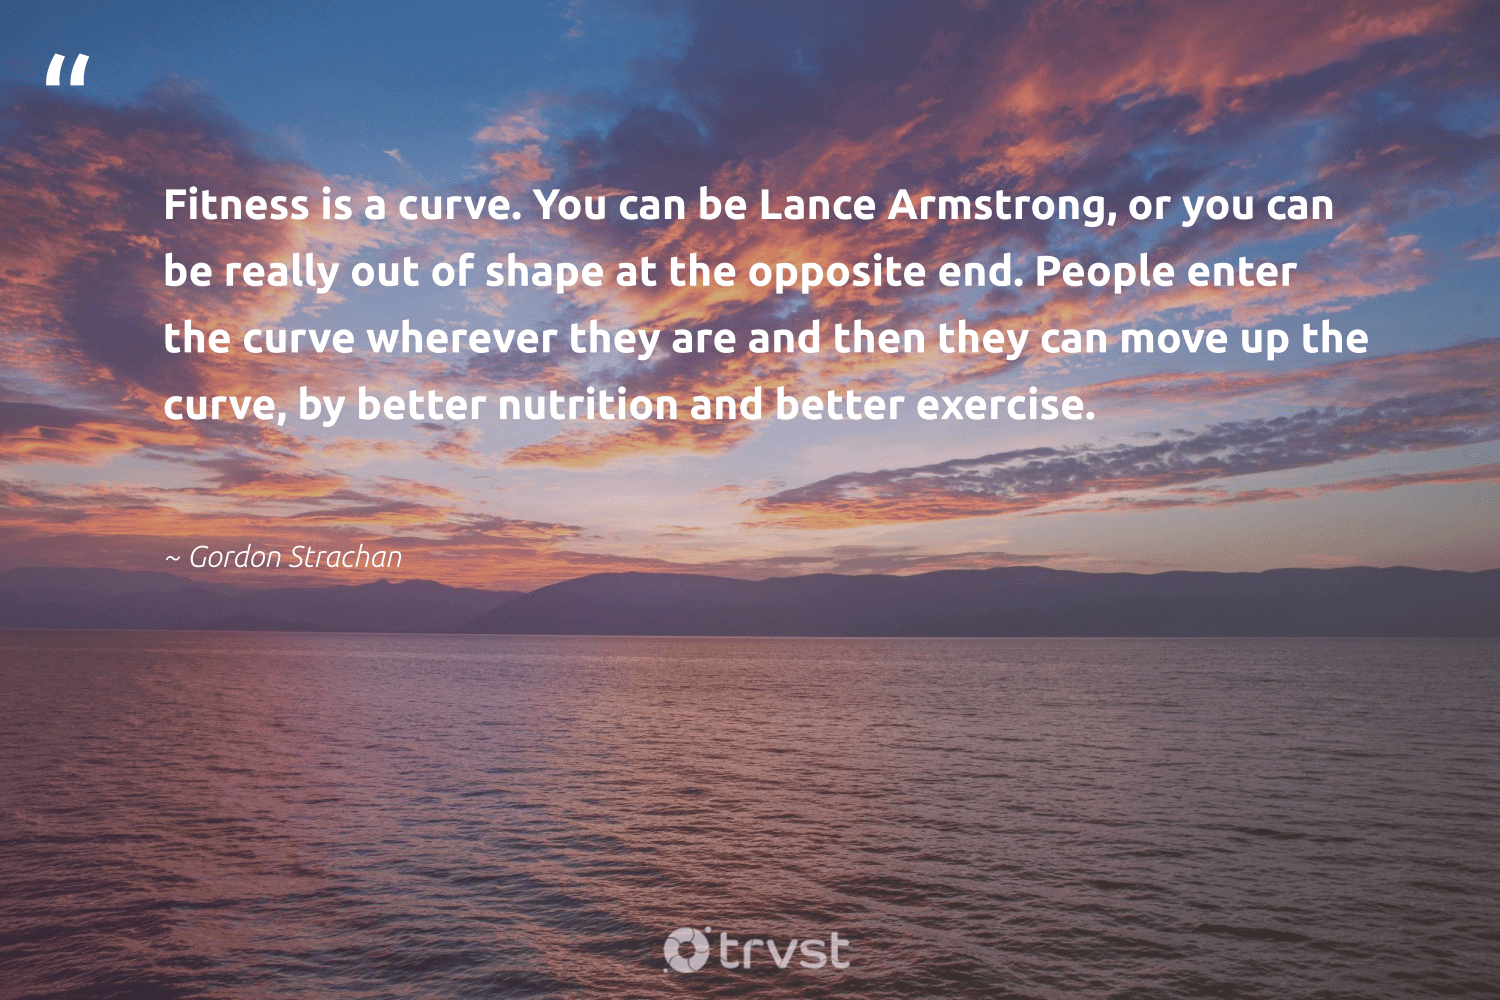 """""""Fitness is a curve. You can be Lance Armstrong, or you can be really out of shape at the opposite end. People enter the curve wherever they are and then they can move up the curve, by better nutrition and better exercise.""""  - Gordon Strachan #trvst #quotes #fitness #nutrition #exercise #cardio #healthylifestyle #changemakers #mindset #bethechange #fitnessgoals #eatclean"""